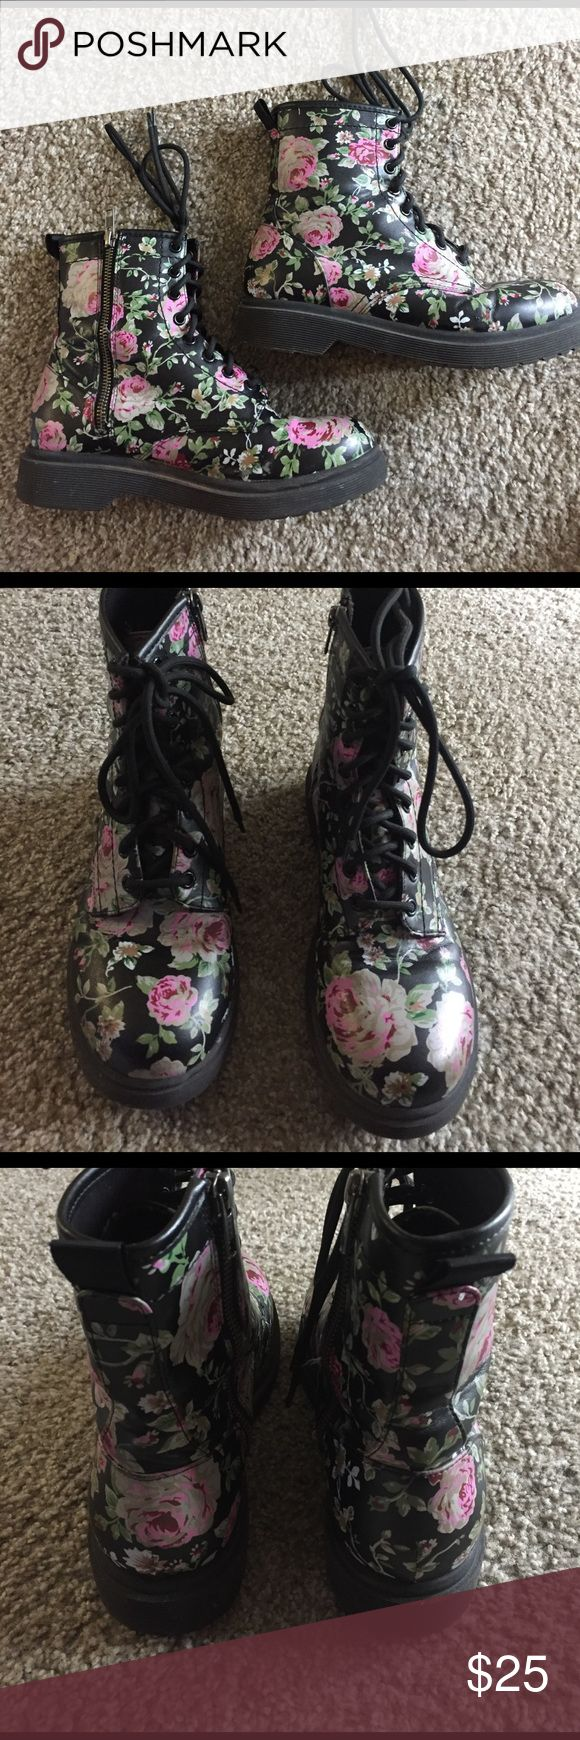 Floral Doc Marten style boot sz 8.5 Floral Doc Marten style boot sz 8.5.  These are not Doc Martens. They are Mossimo. Great condition barely worn!!!!   No scuffs.  Some fuzzing inside at zipper ankle cover shown in last pic.  A little peeling at at crease. Shown in pics. Mossimo Supply Co Shoes Lace Up Boots